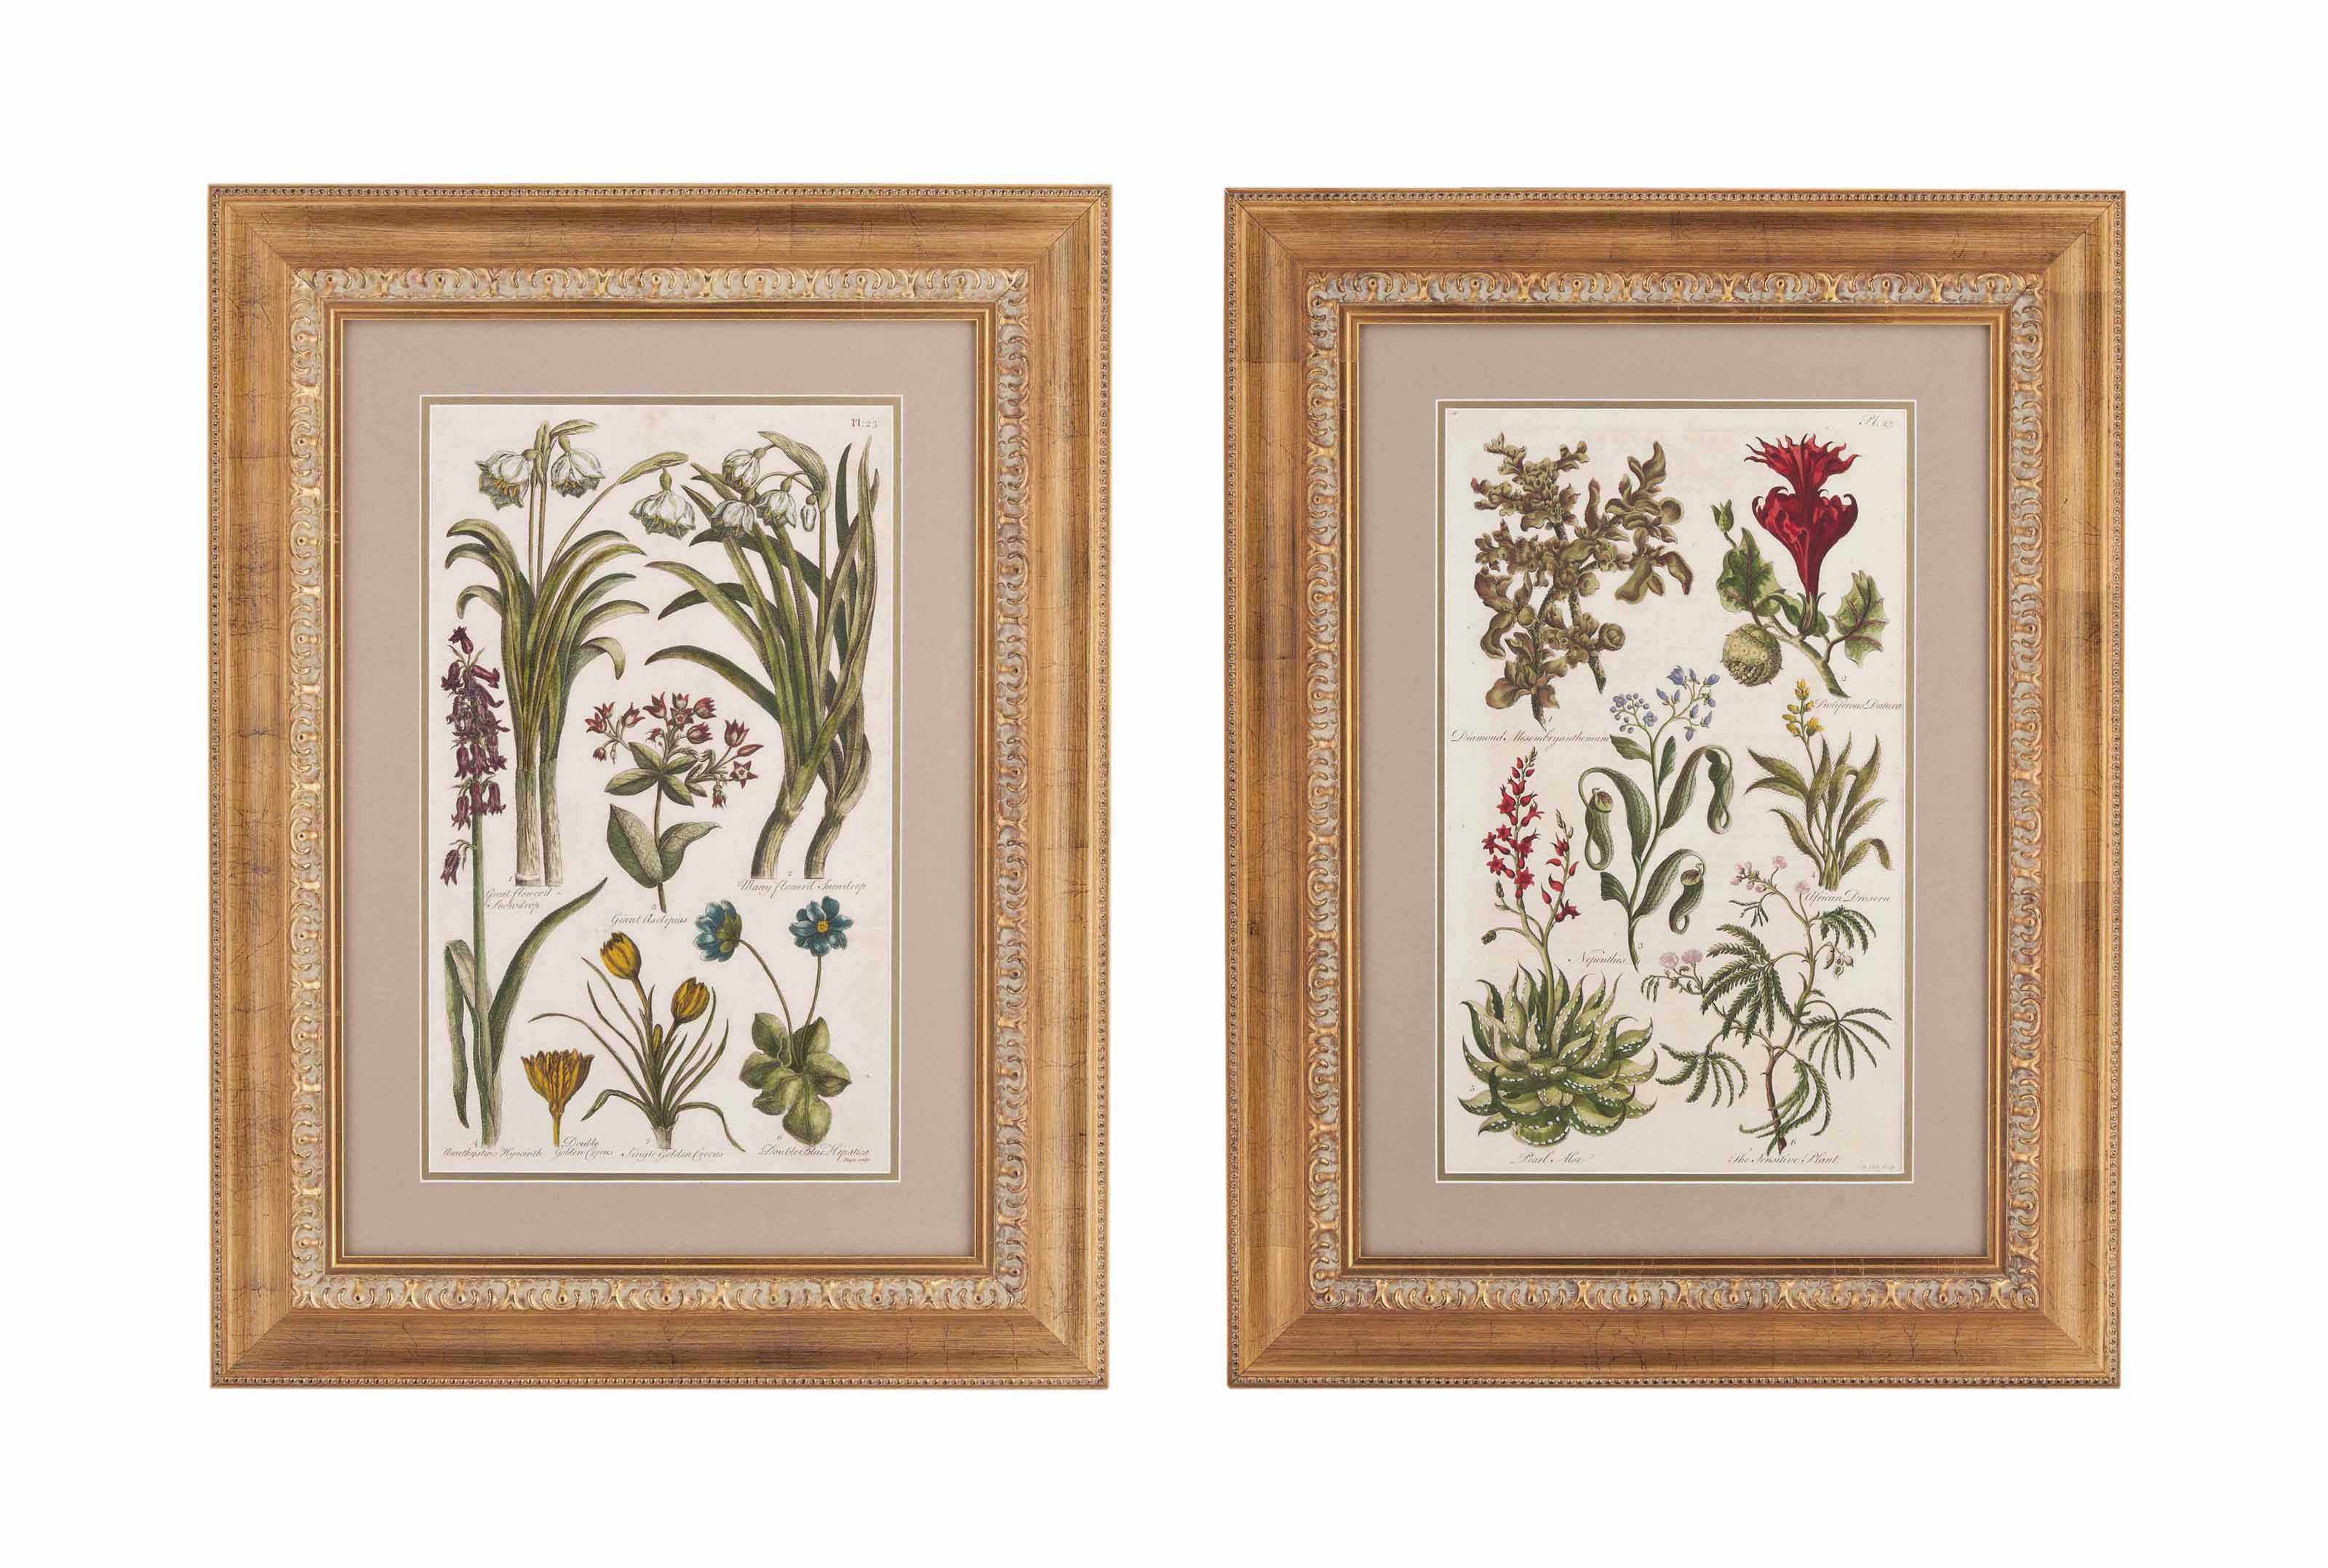 TEN PRINTS OF FLOWERING PLANTS